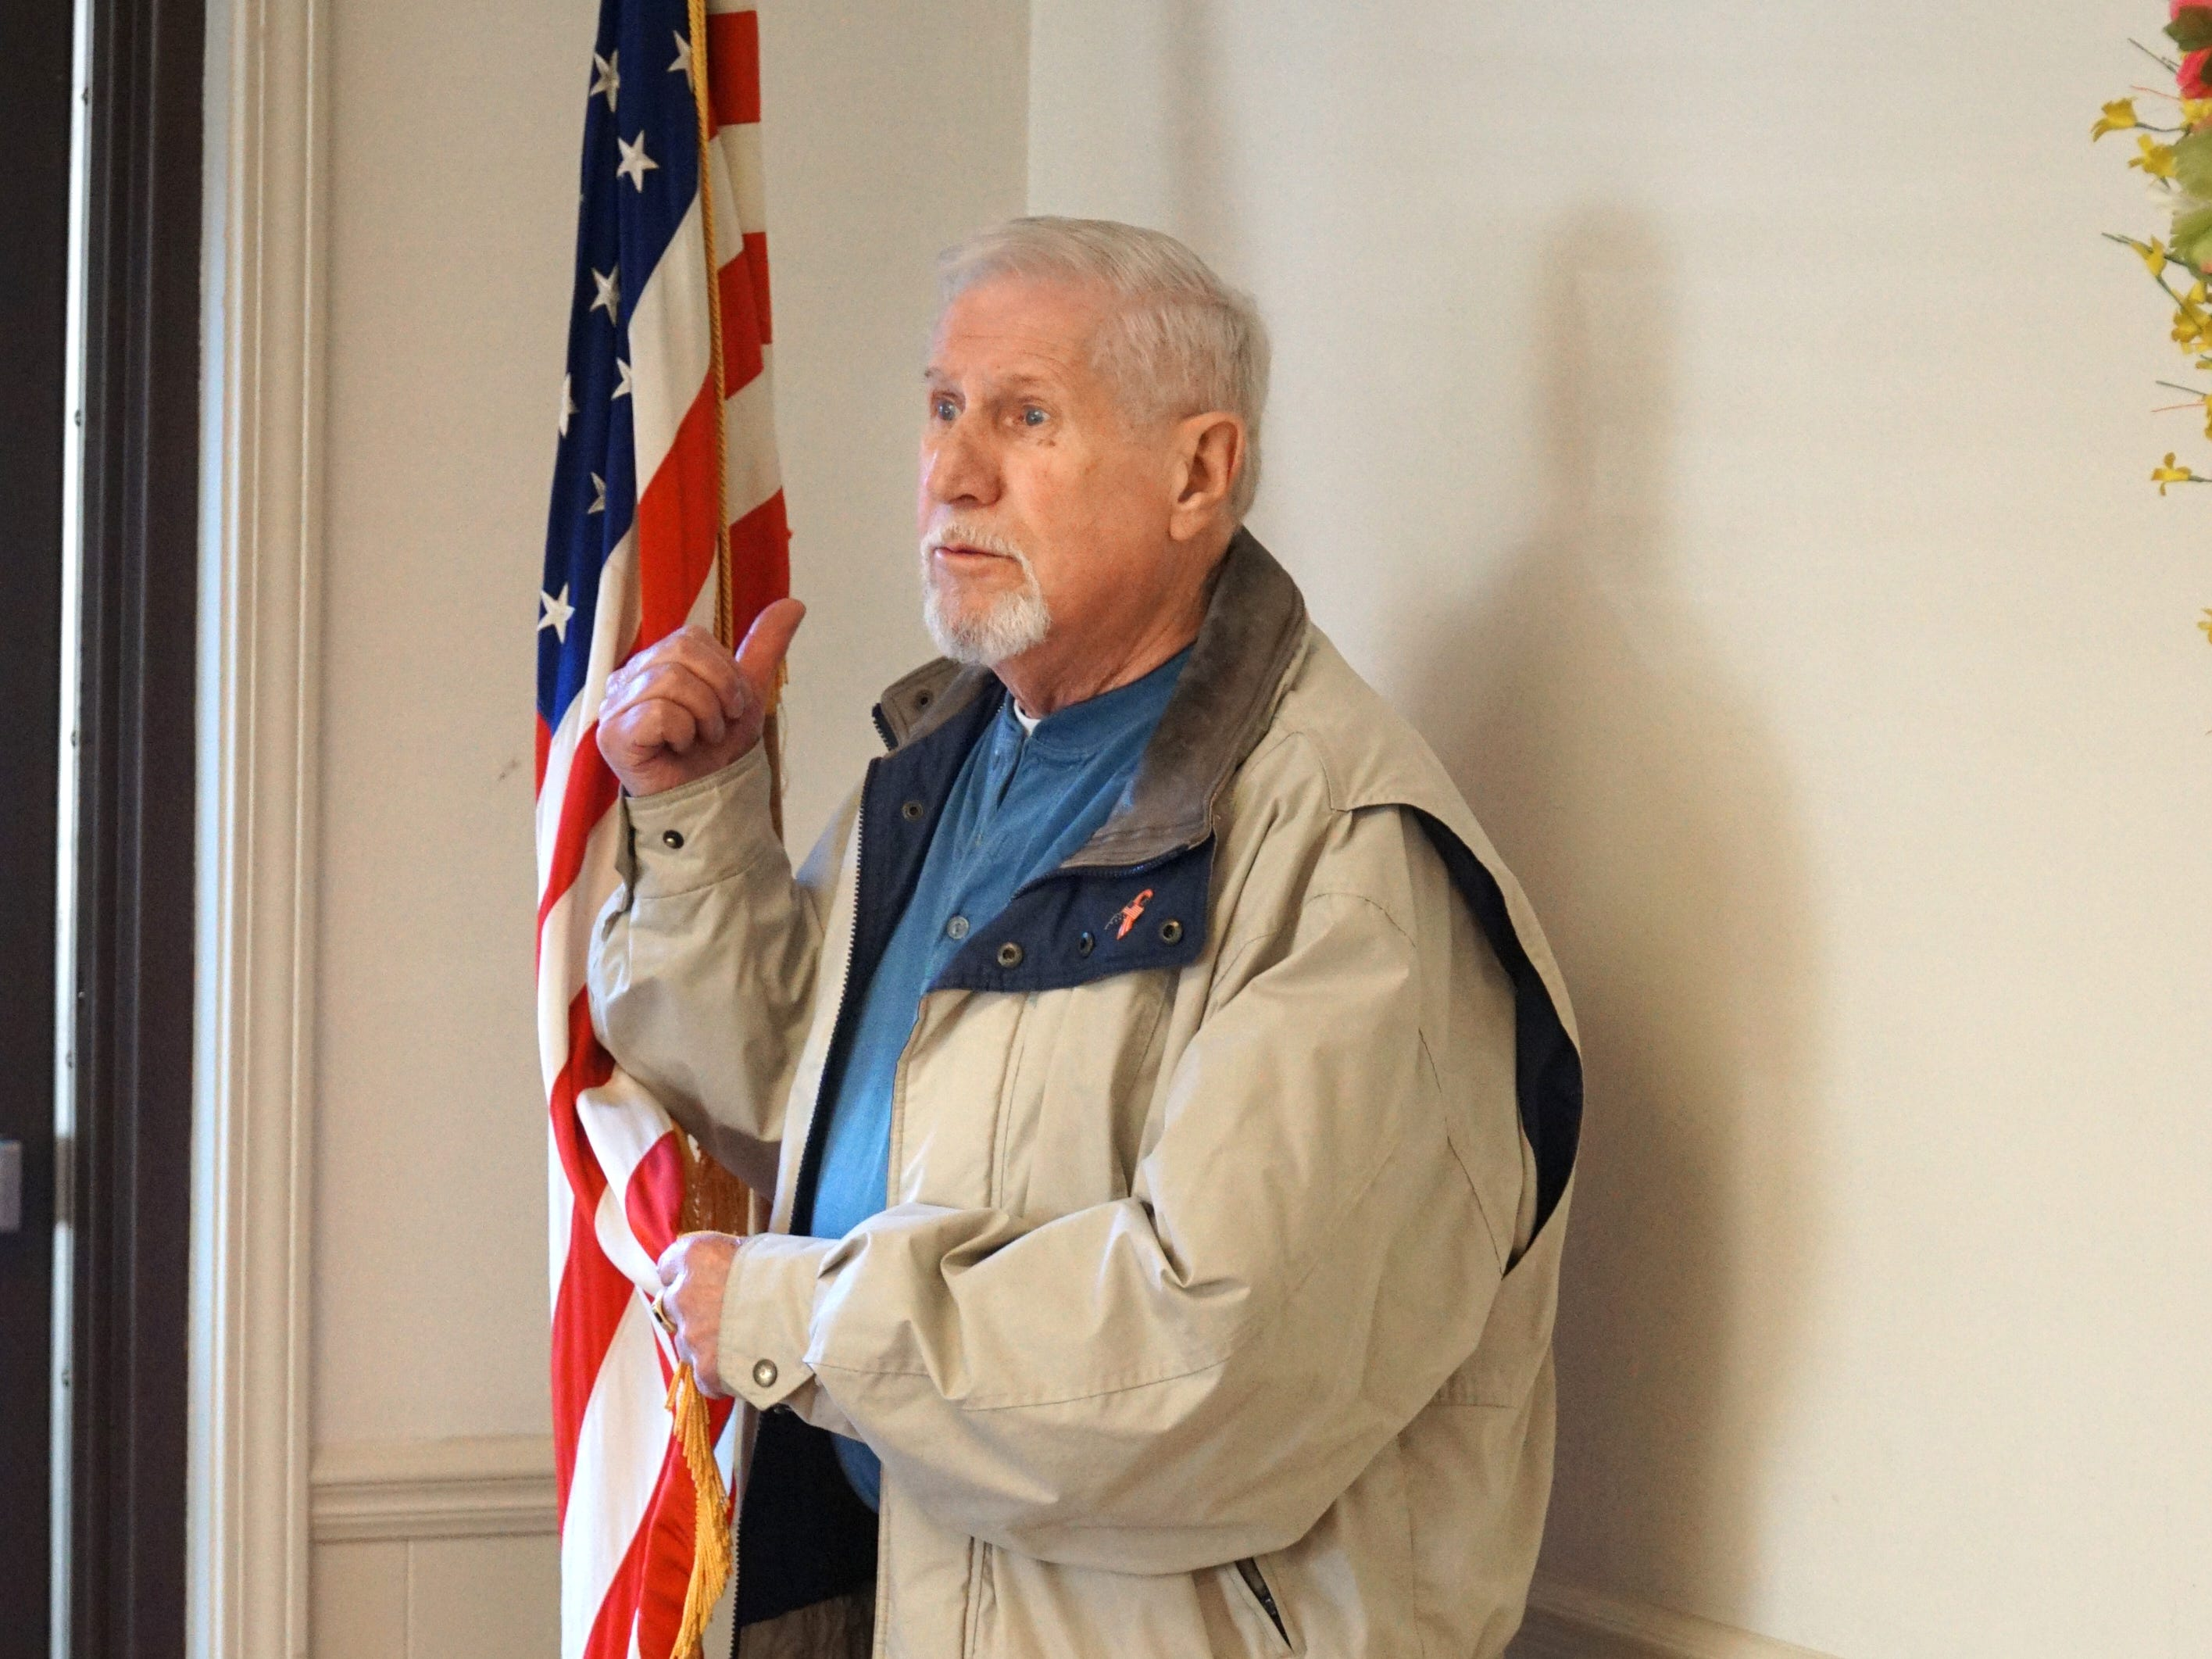 Ivan Emilie holds the American Flag as he leads the Veterans' Lunch in the Pledge of Allegiance on March 18 at the Milford Senior Center.